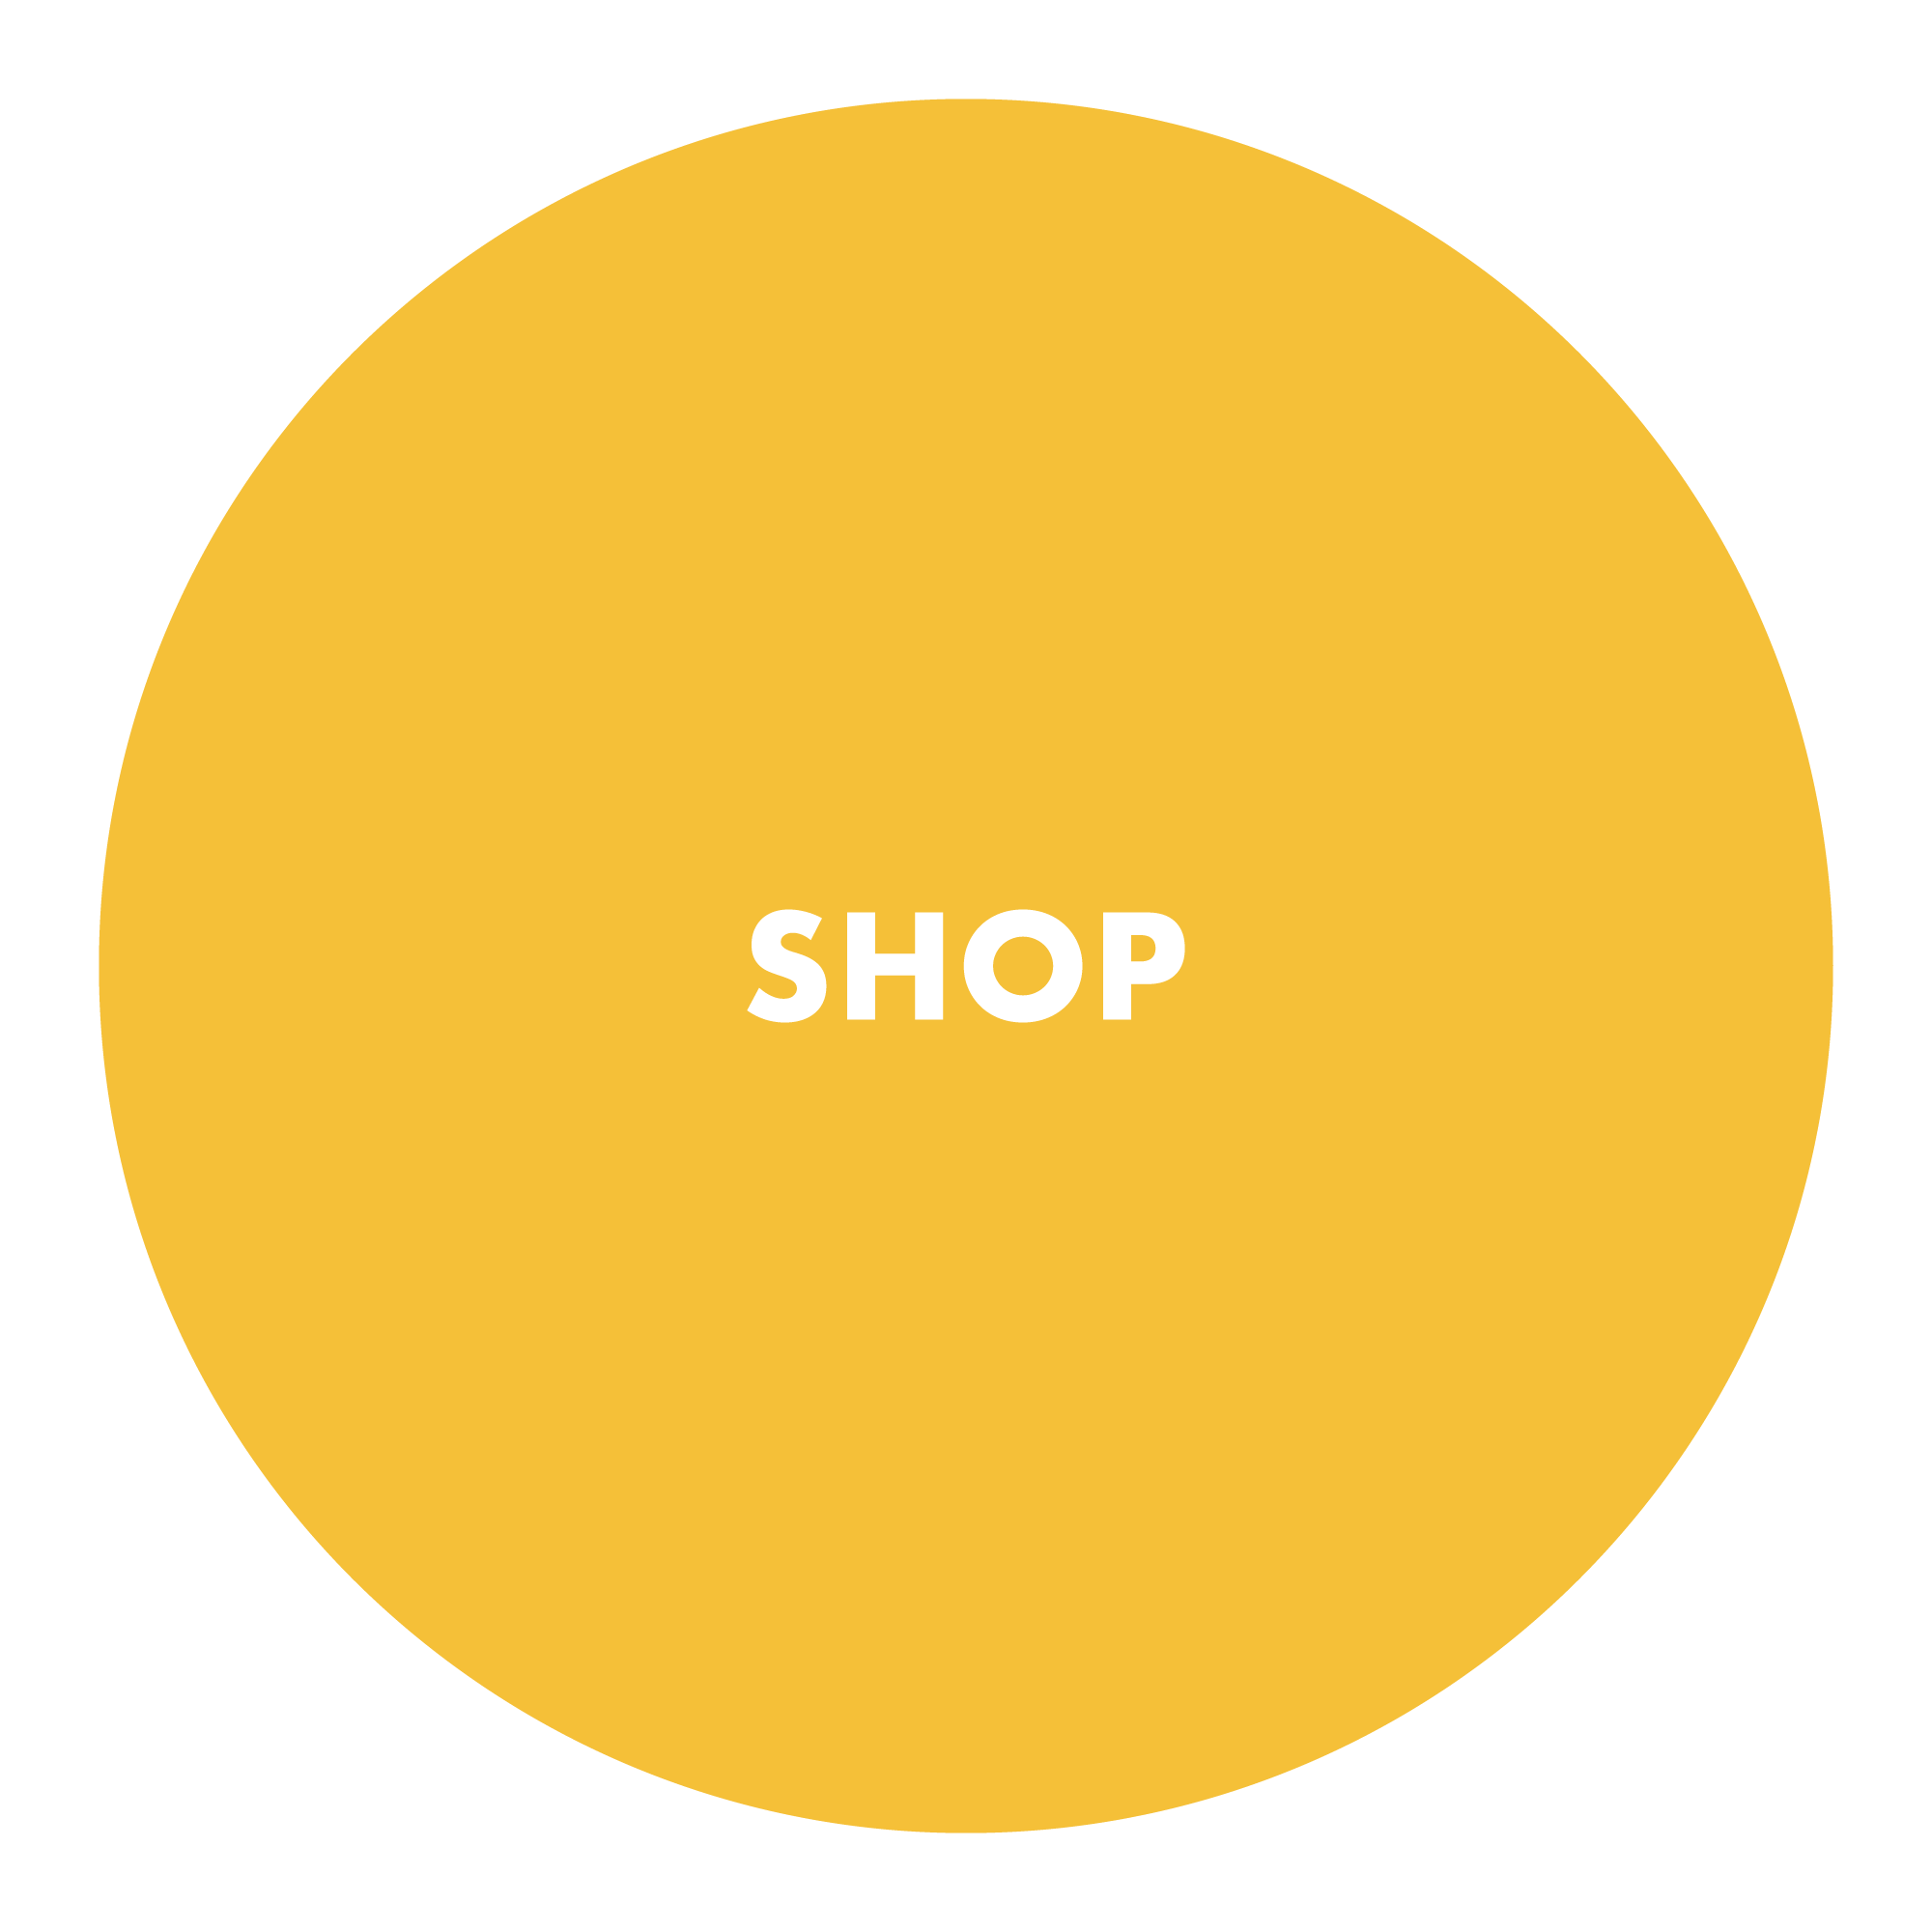 shop-iconpng-03.png